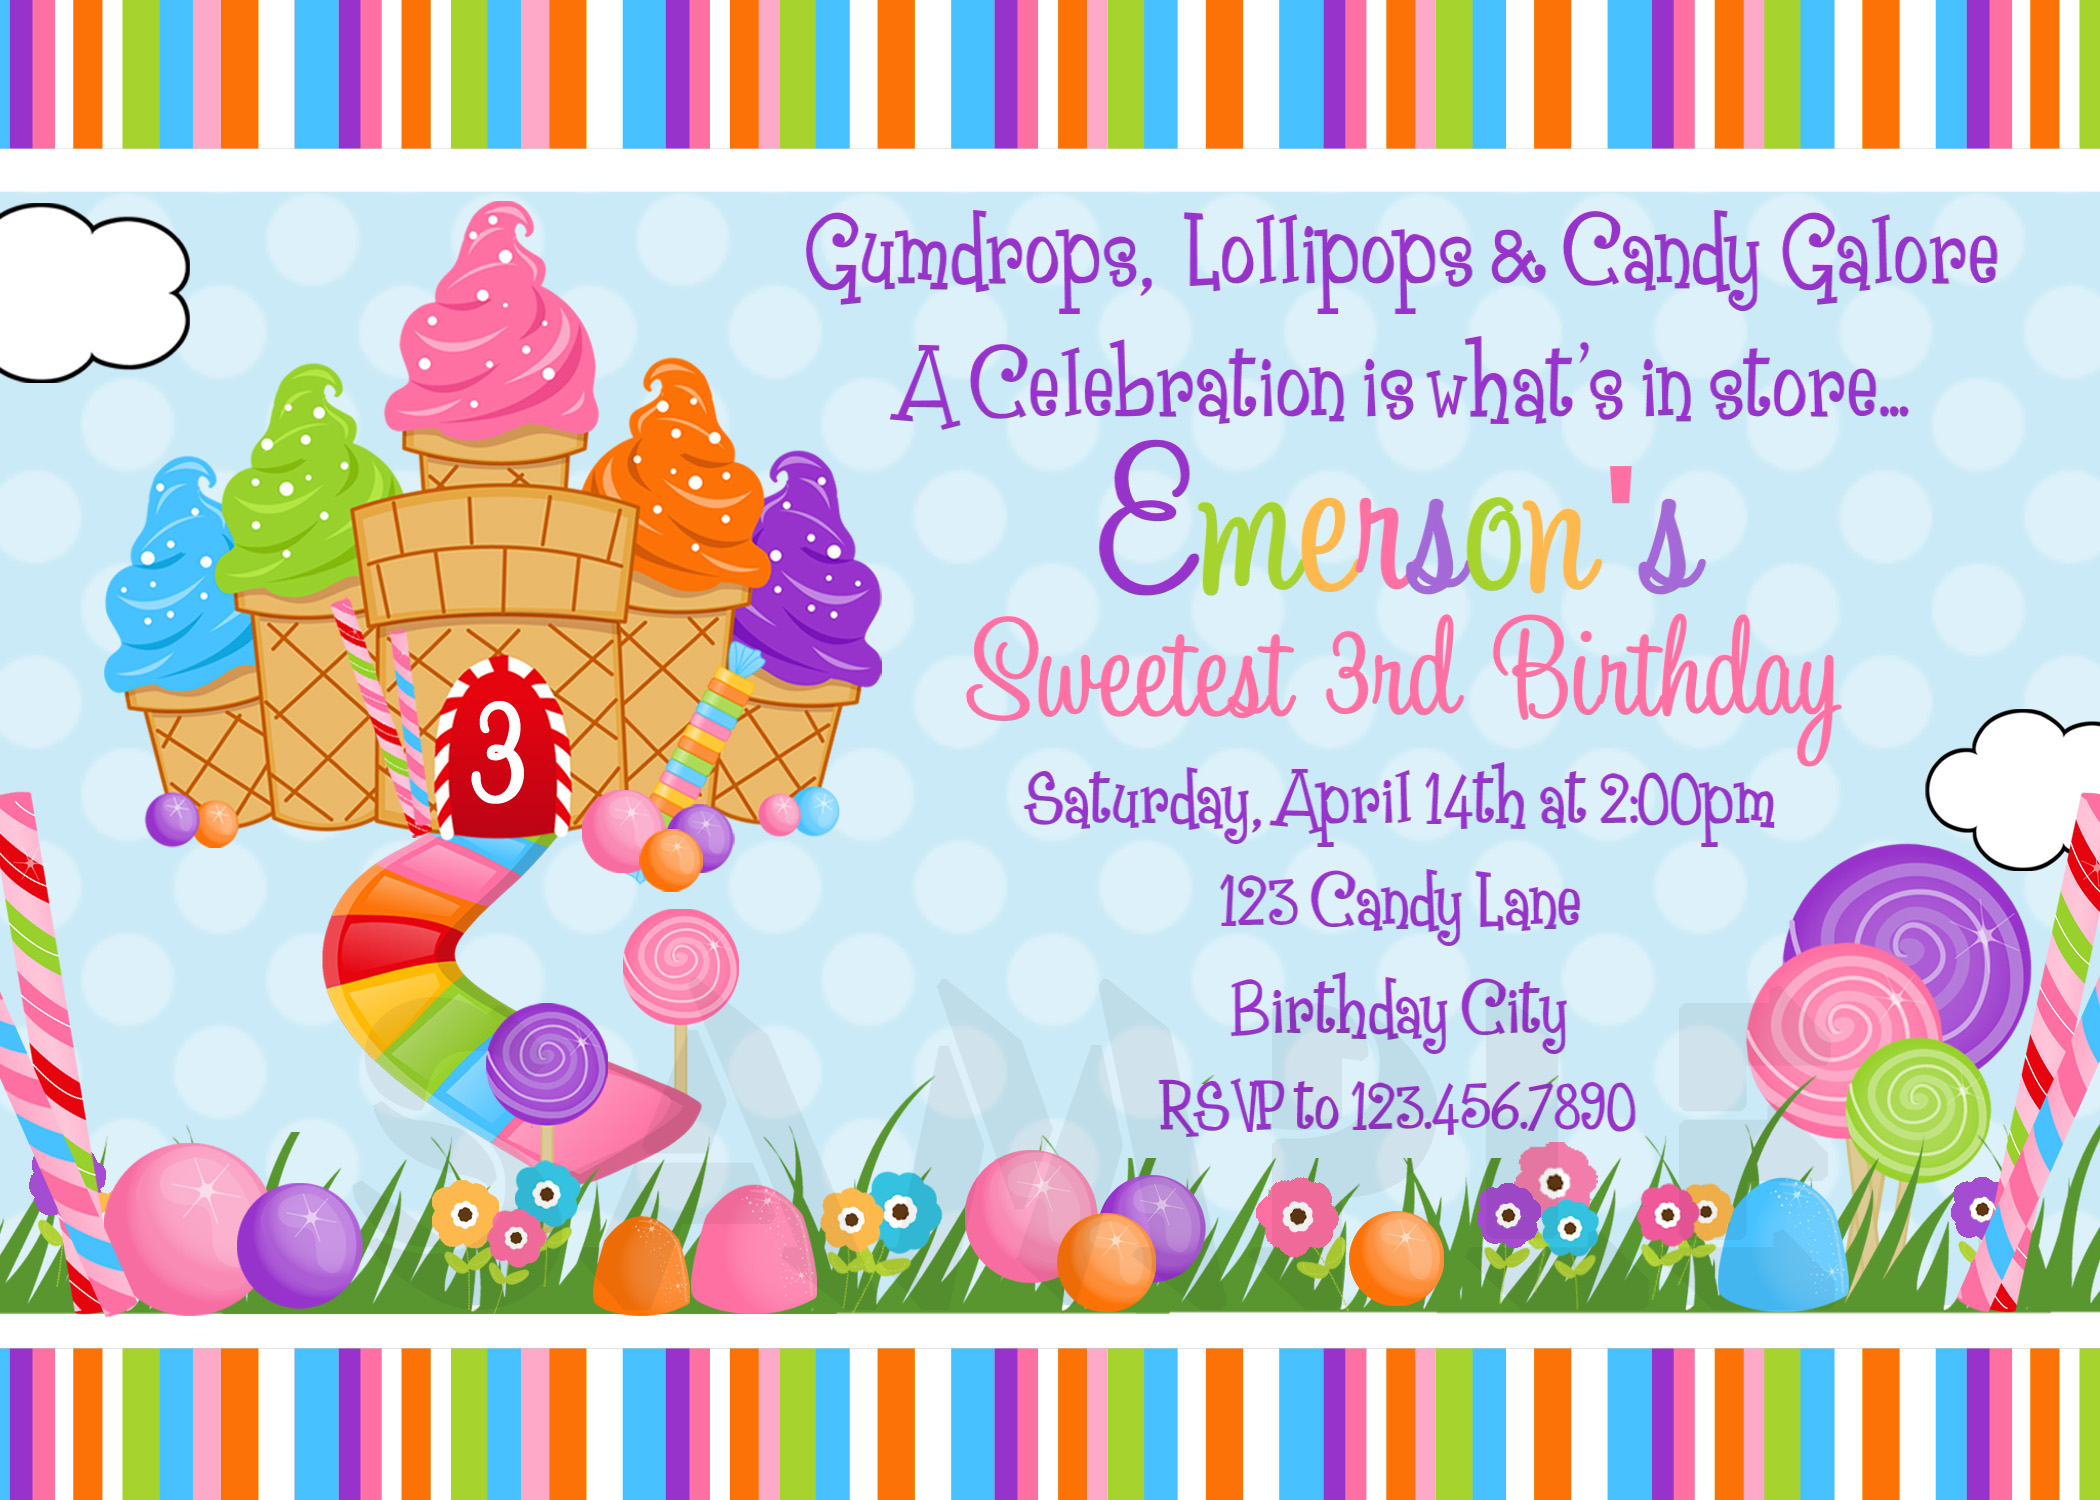 candy themed birthday invitation wording ; candyland-birthday-invitations-to-get-ideas-how-to-make-your-own-Birthday-invitation-design-1